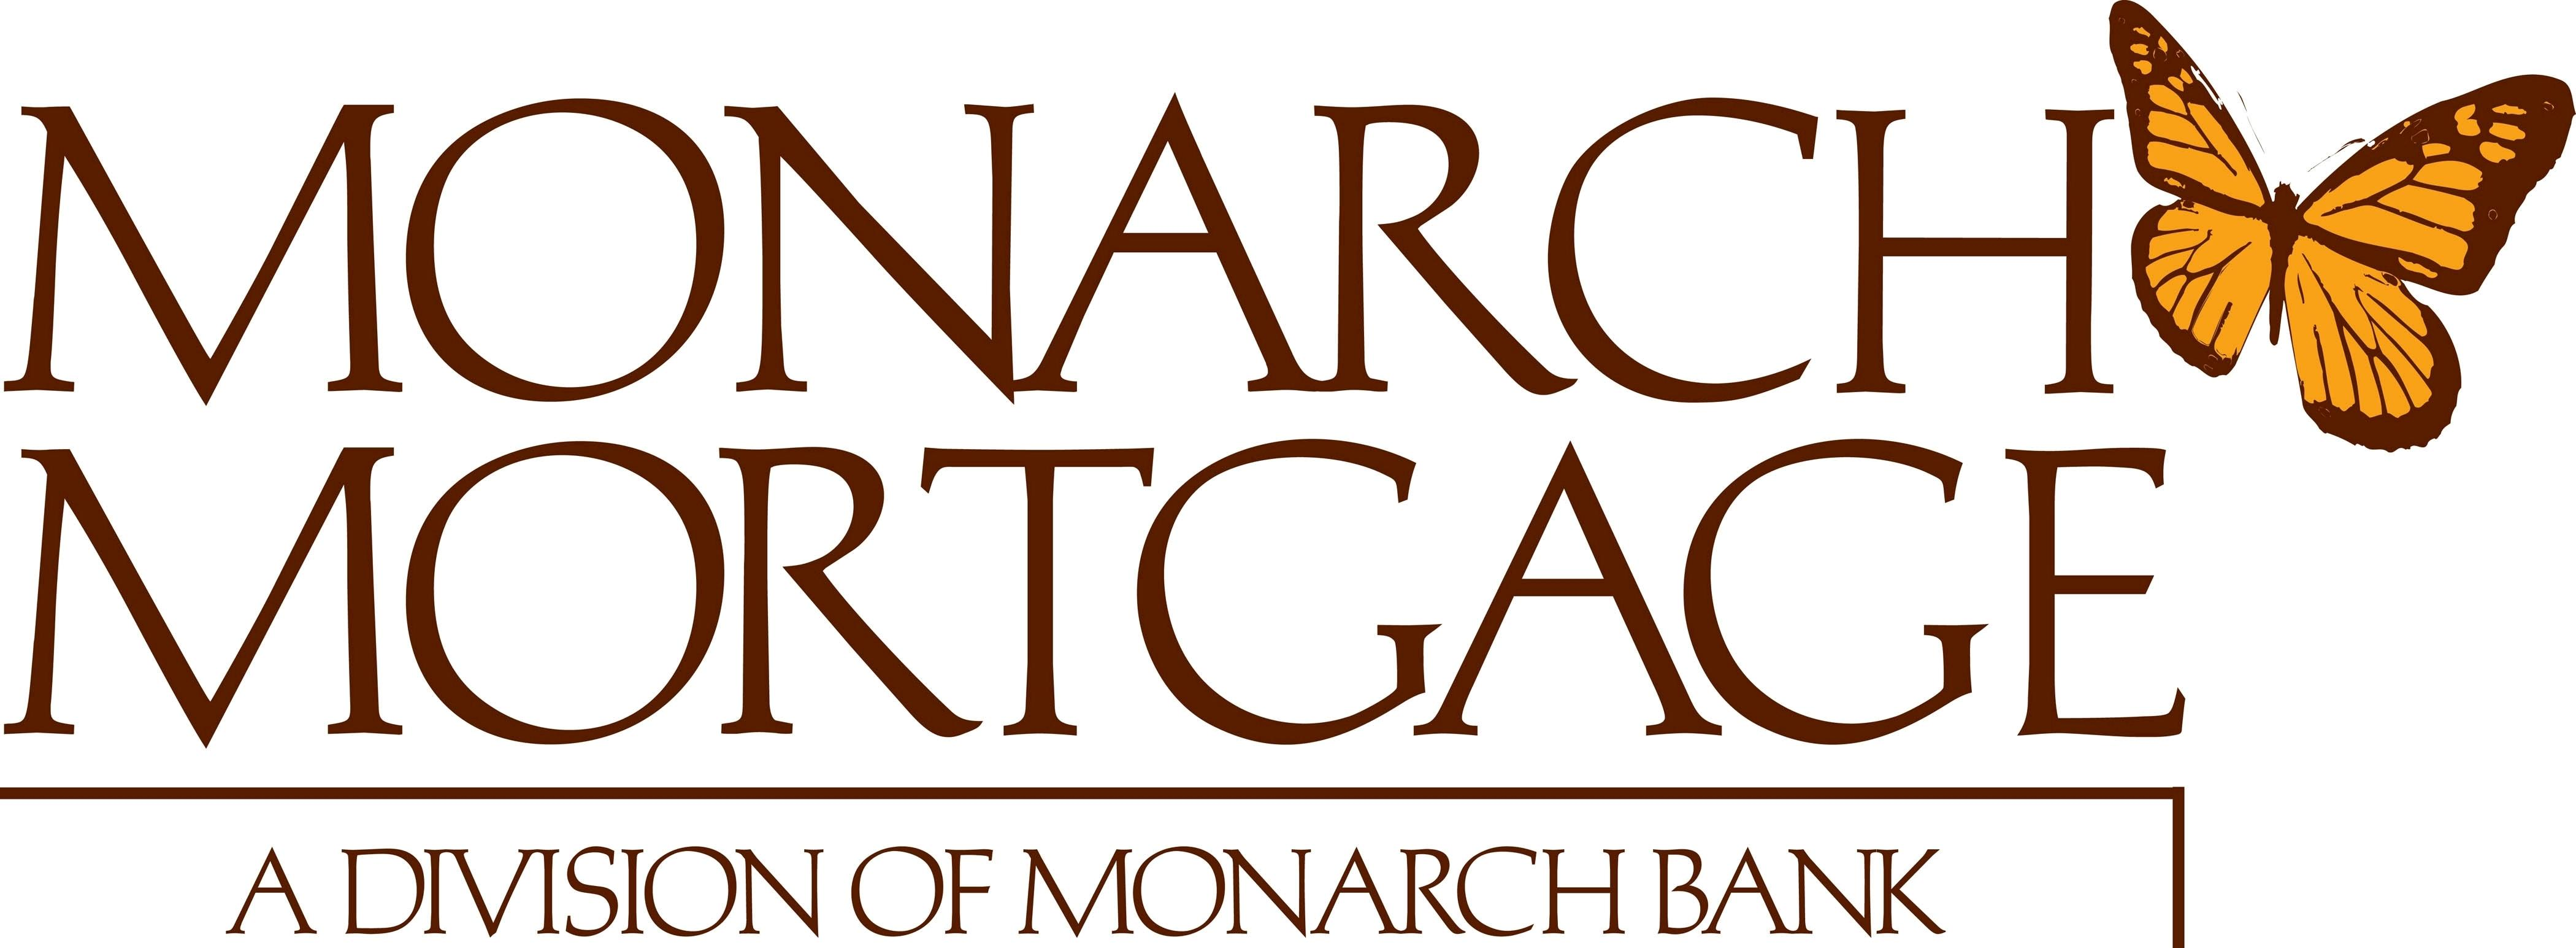 Monarch-Mortgage-COLOR-logo